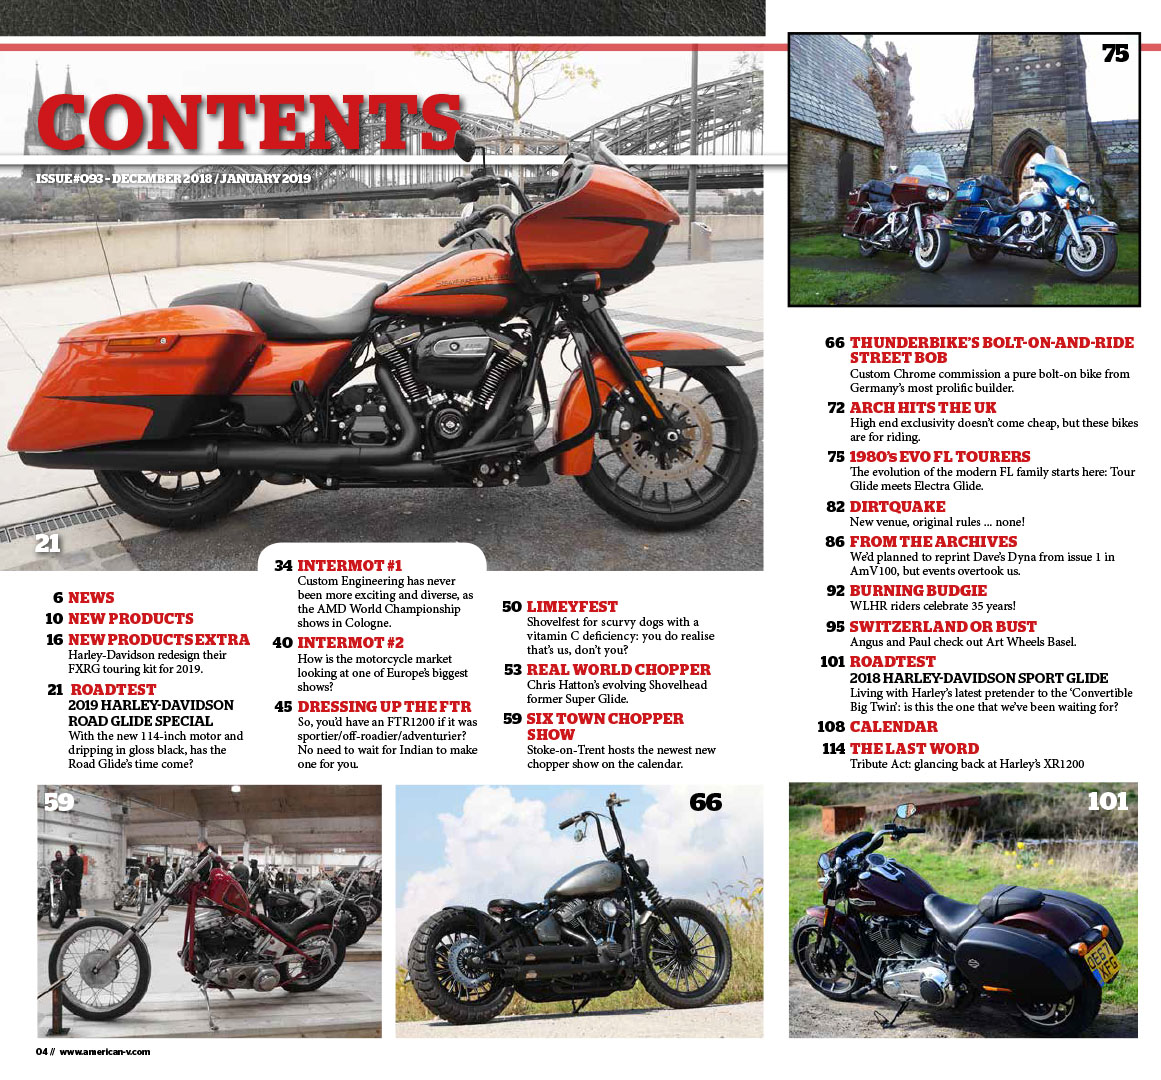 88e0a0d03 NEWS  Indian launch the FTR1200    Arch launches in the UK     Harley-Davidson unveils new FXRG Clothing Line    Indian reveals accessory  line-up for FTR1200